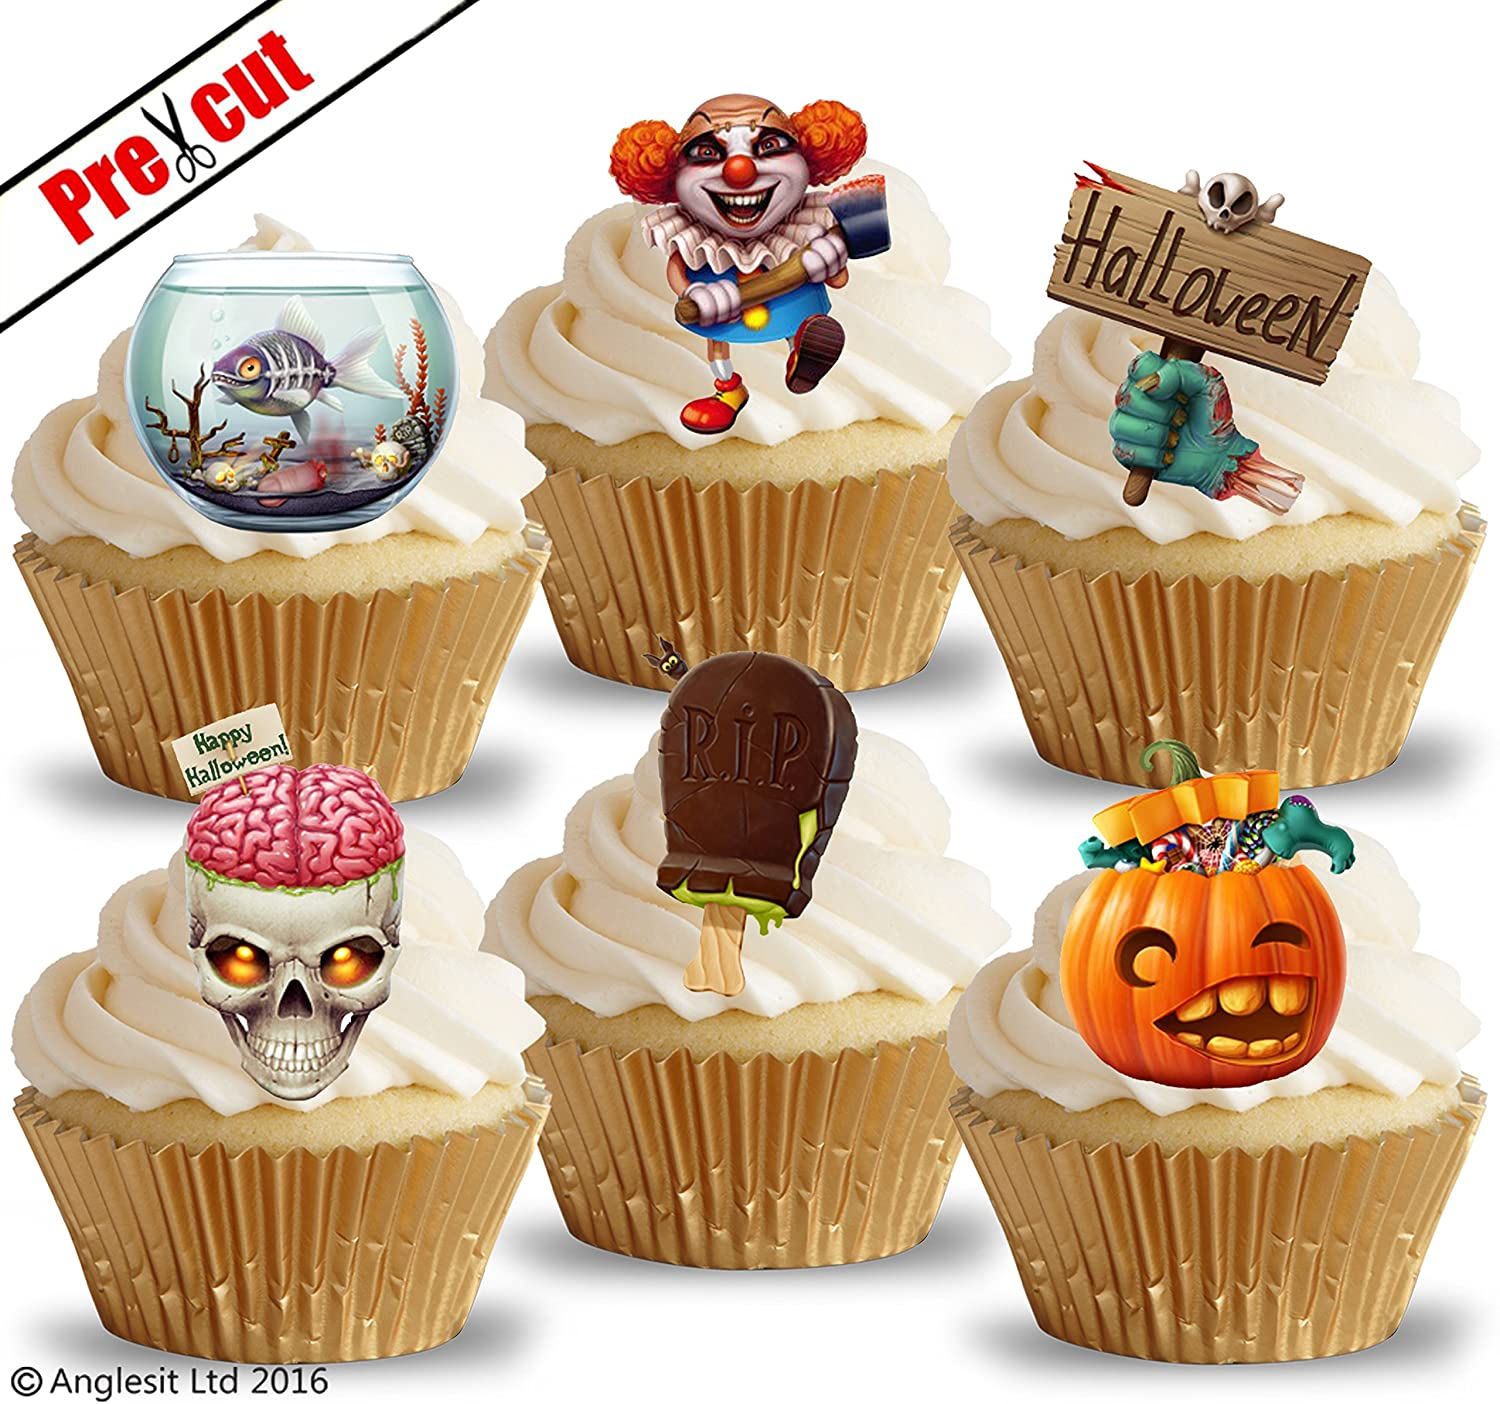 35 x Pre Cut Halloween Cake Cupcake Toppers//Decorations Edible Wafer Paper